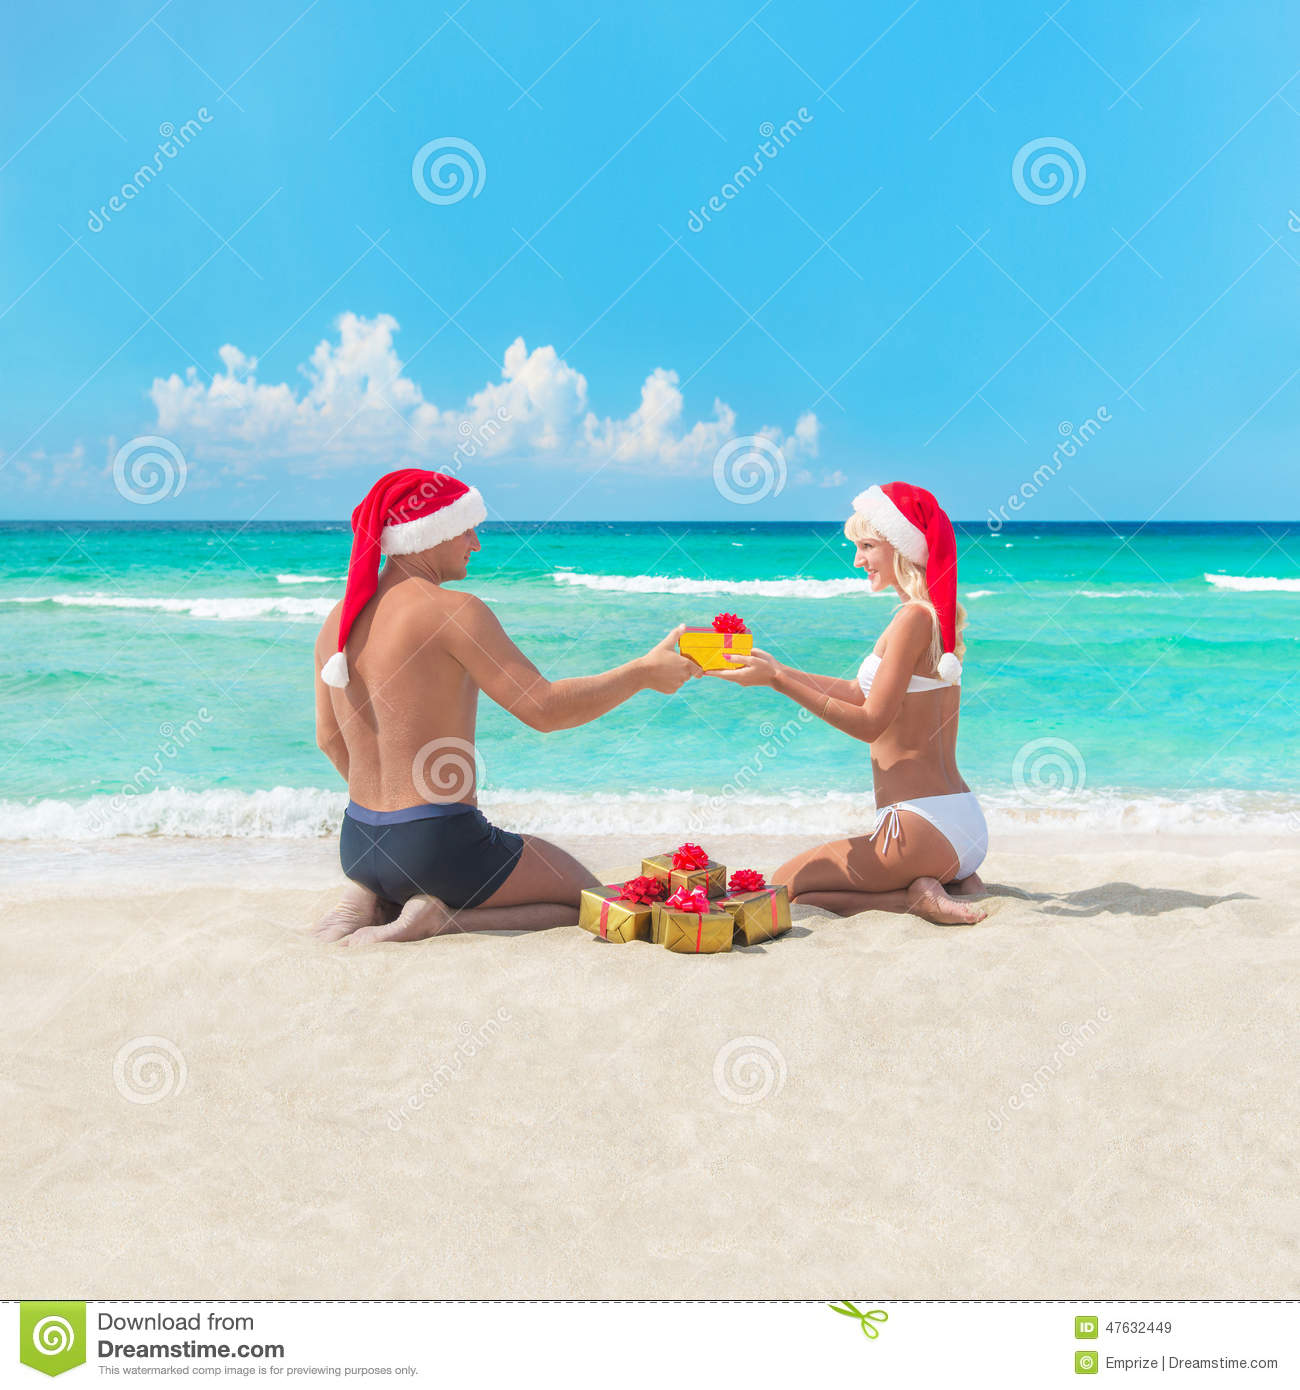 Couple At The Beach Stock Image Image Of Caucasian: Happy Couple At Beach In Santa Hats Making Presents For